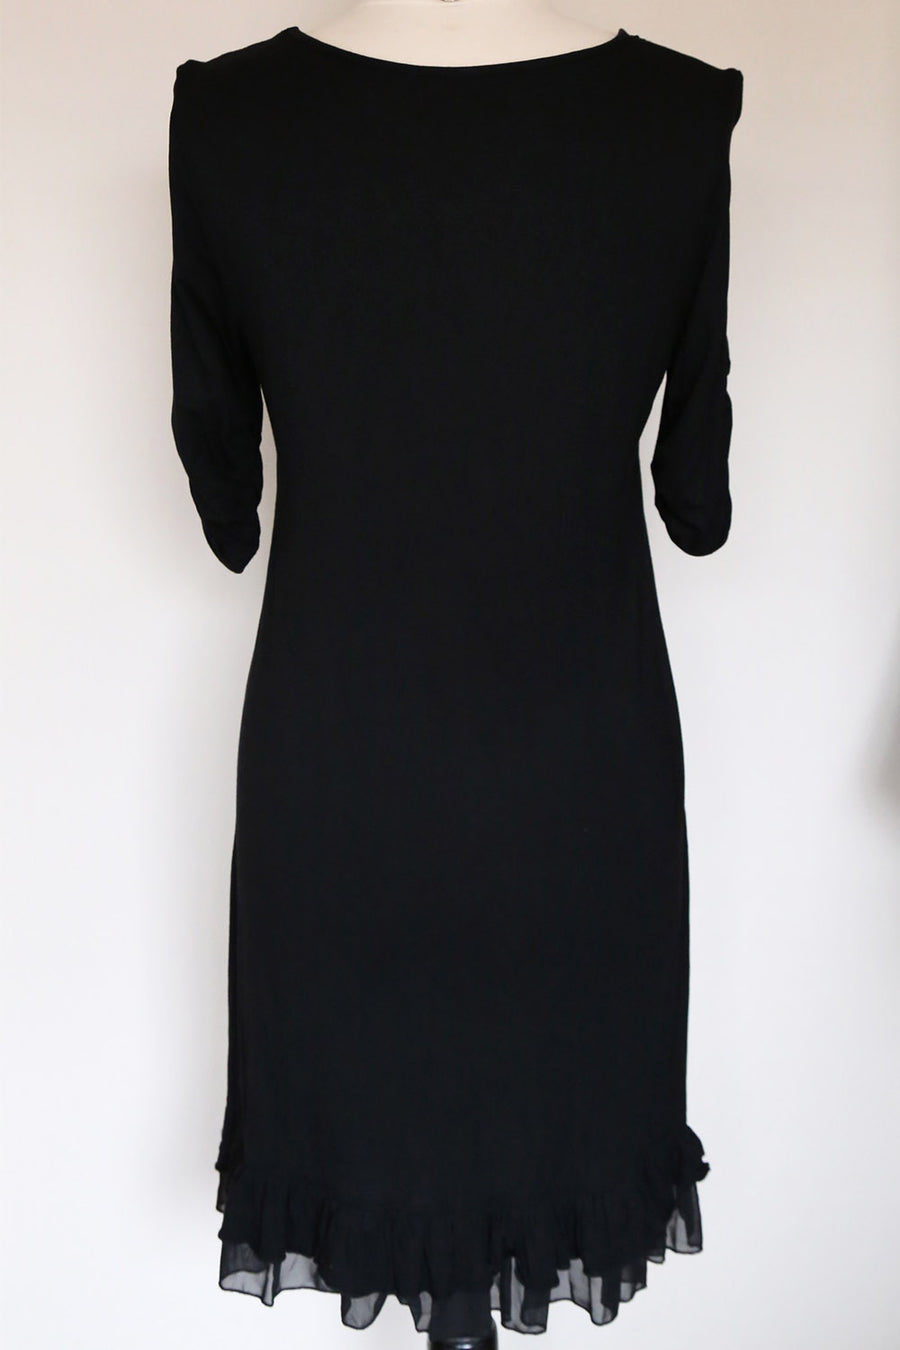 PRELOVED - Frilled Black Jersey Dress